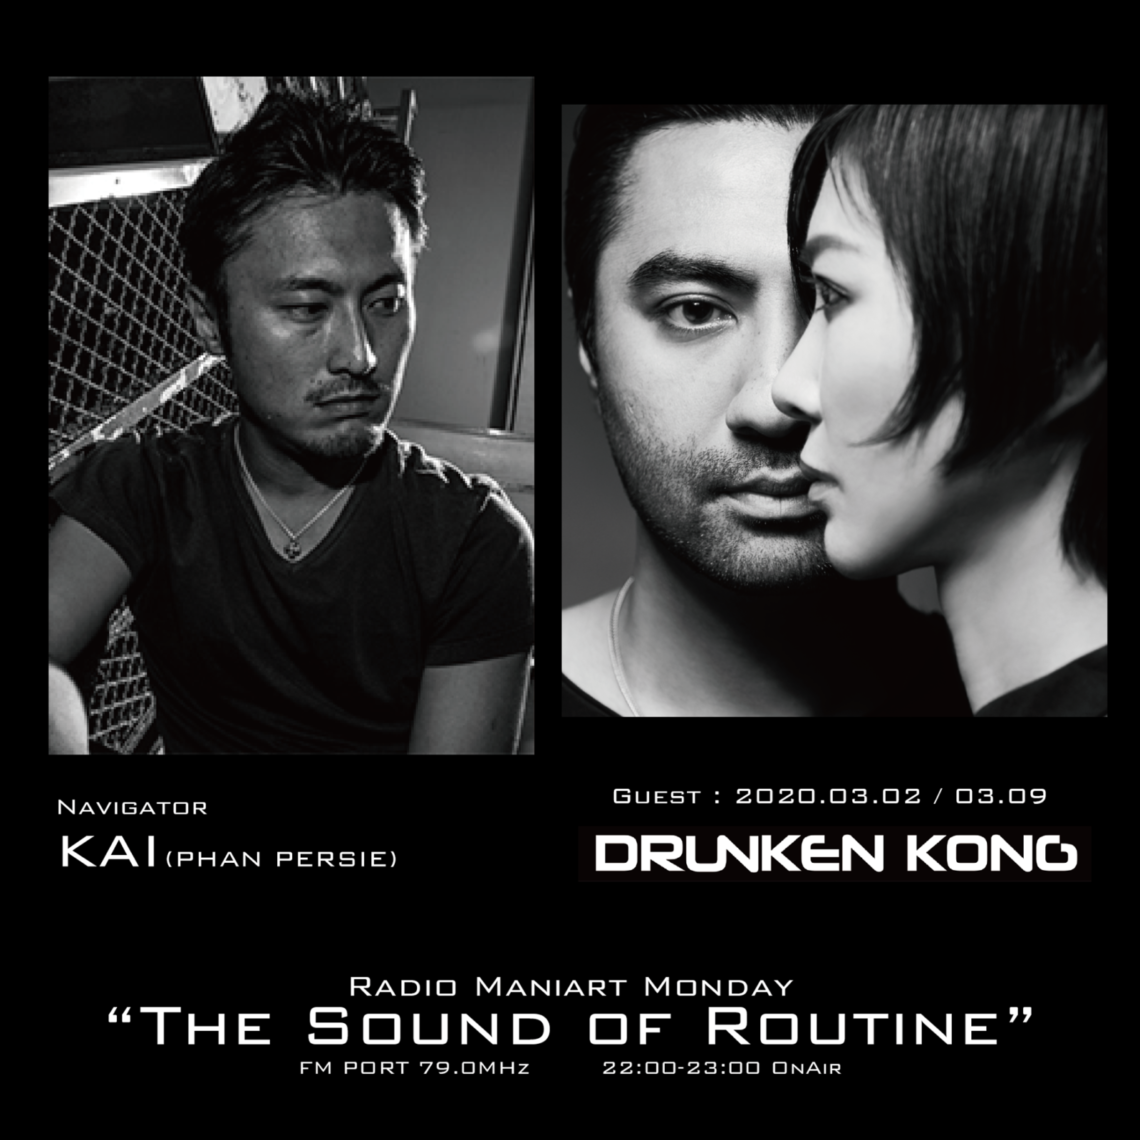 2020. 3. 2 MON, 3. 9 MON – KAI : Navigator on FM PORT / the Sound of Routine – Guest : DRUNKEN KONG ( Tronic/Terminal M )